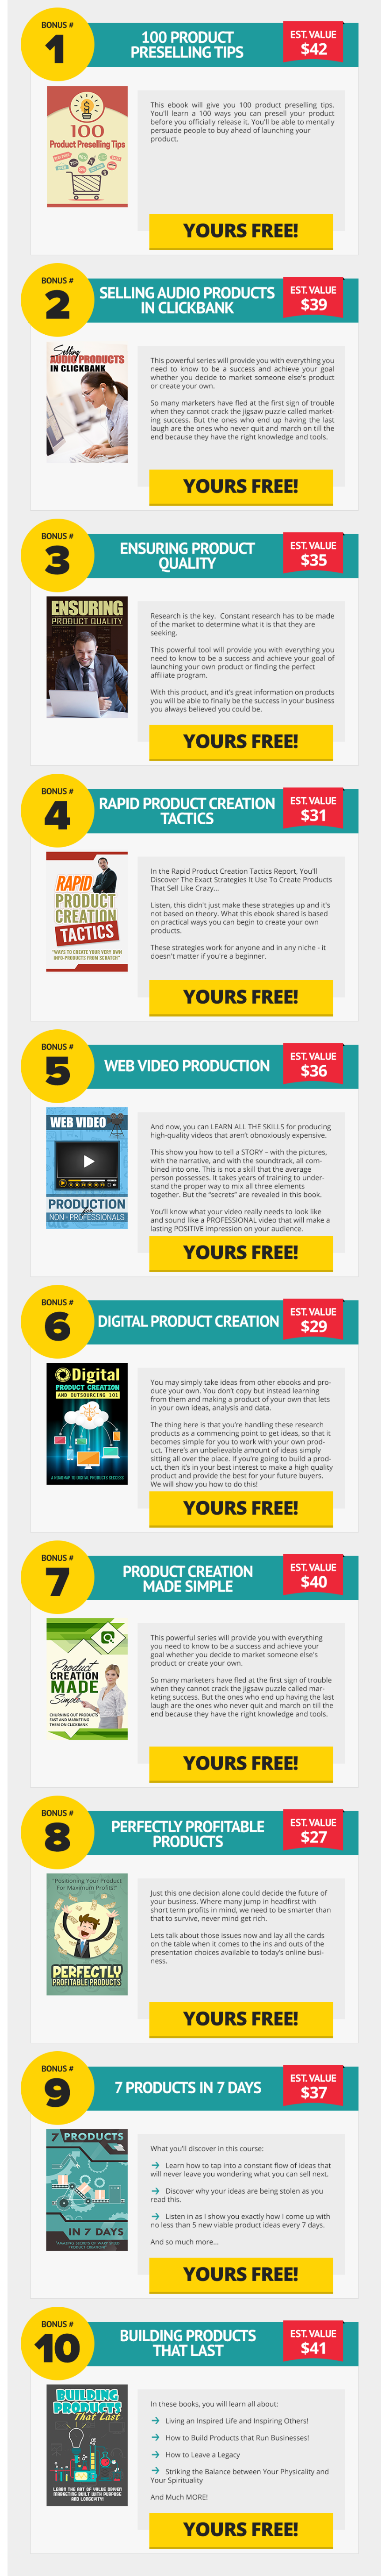 Your First Product PLR Bonuses